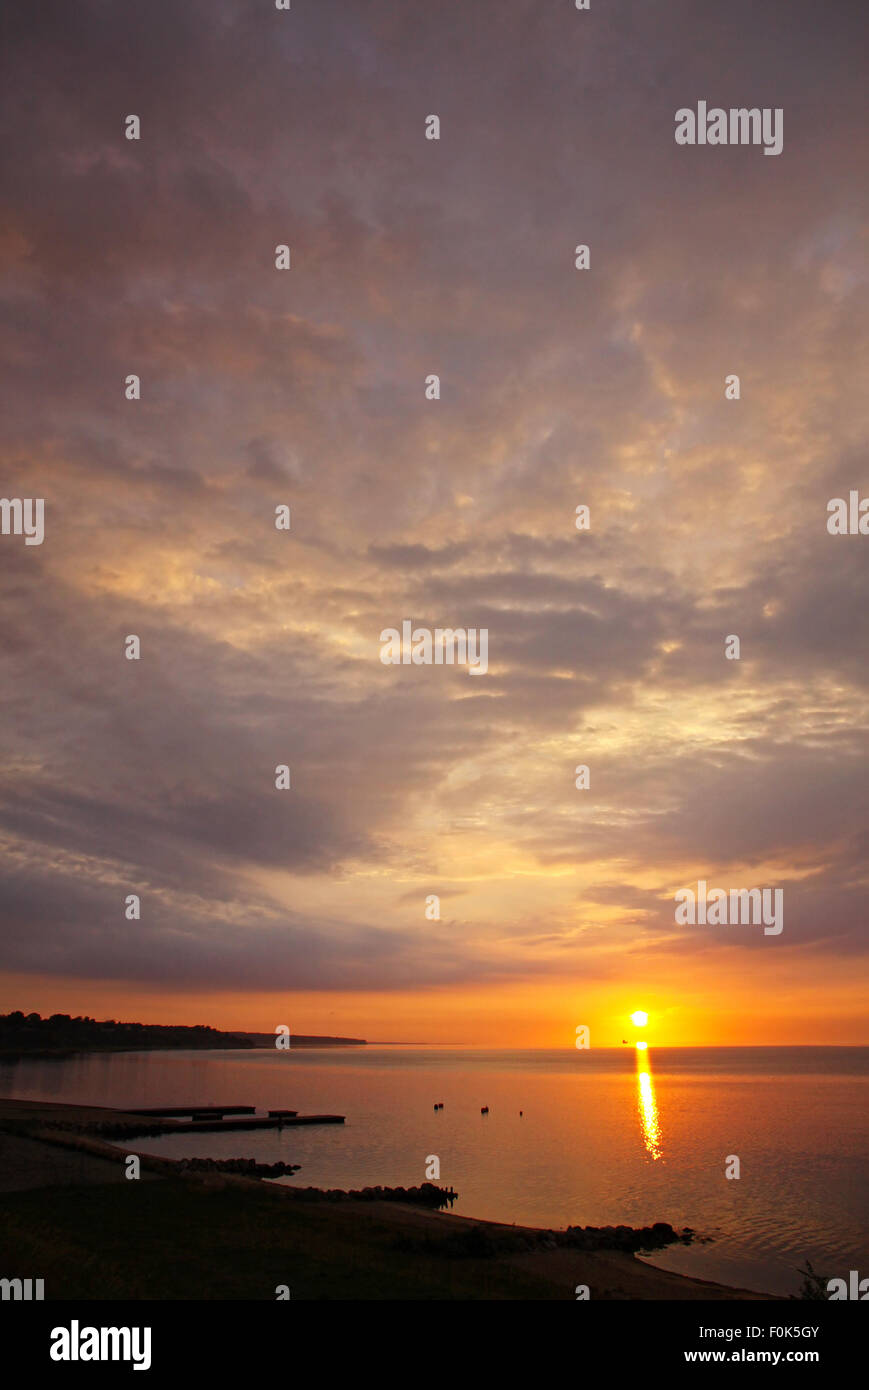 Sunrise over Kattegat strait in Fredericia city, Denmark. Kattegat is a sea strait connecting the North Sea and - Stock Image